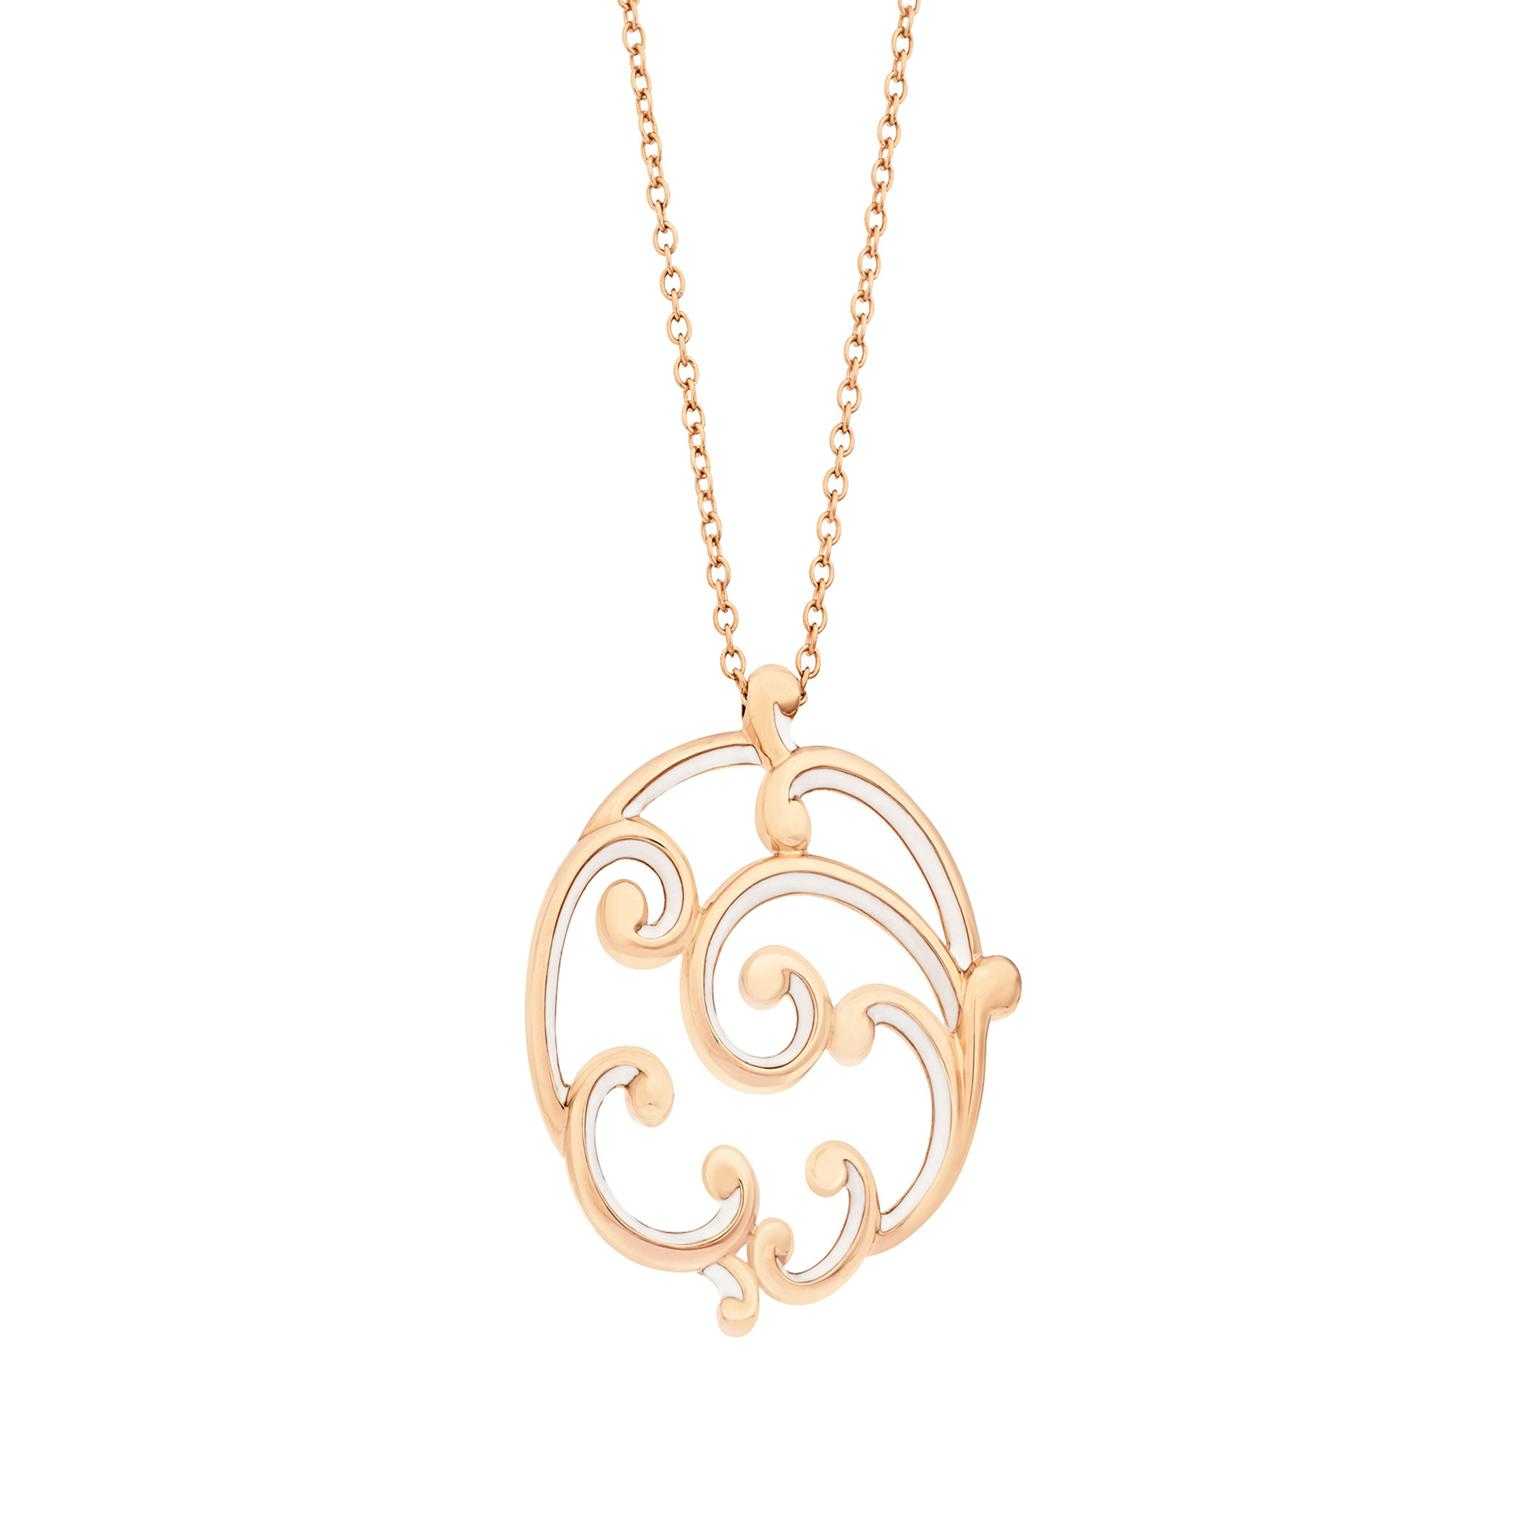 Faberge Rococo rose gold pendant_zoom